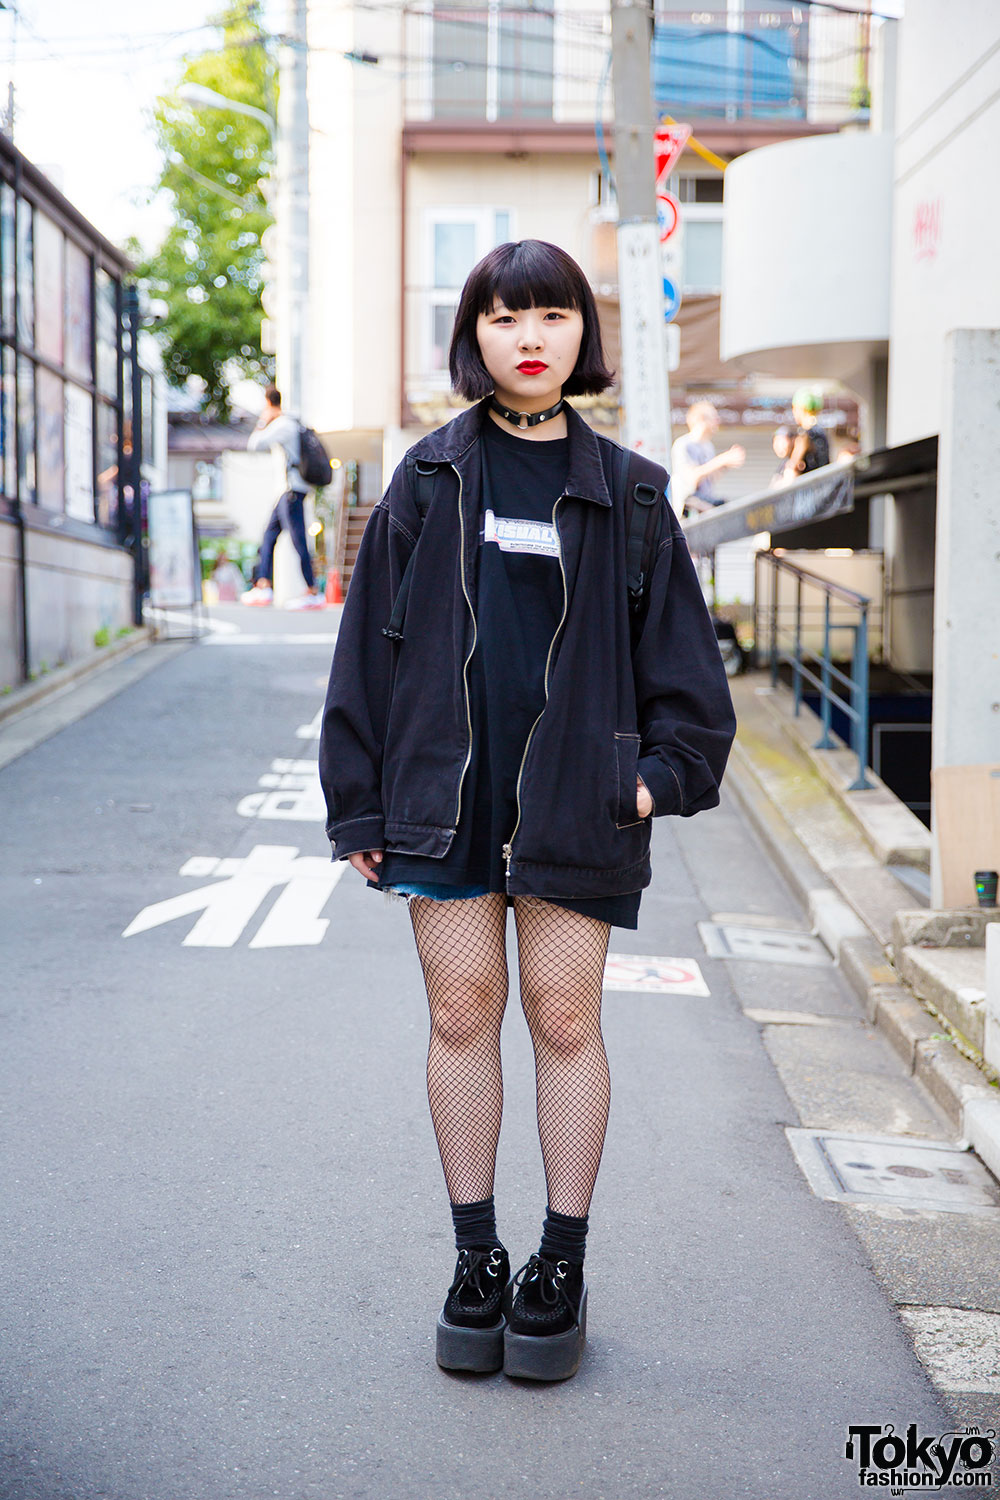 Harajuku Girl In All Black Resale Fashion With Nadia